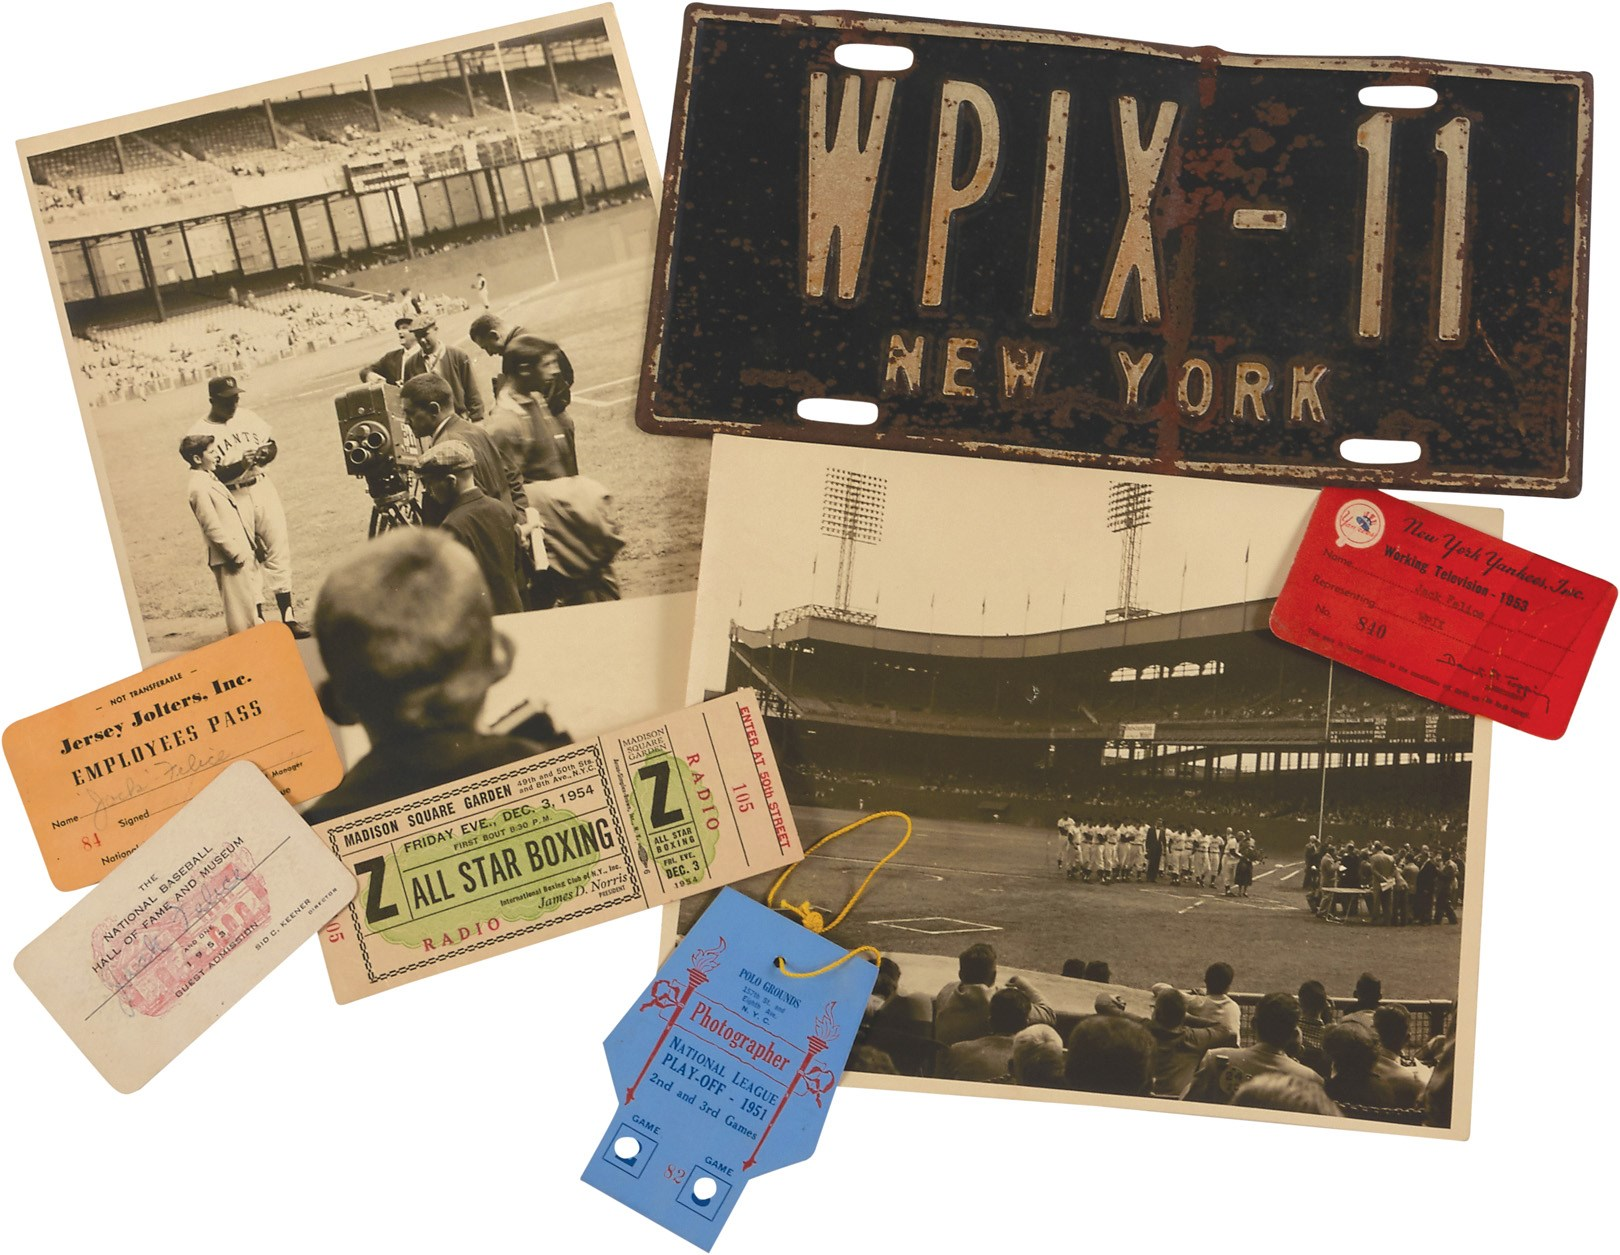 1950s NY Sports Ticket, Pass & Photo Collection - from WPIX 11 Emmy Winner